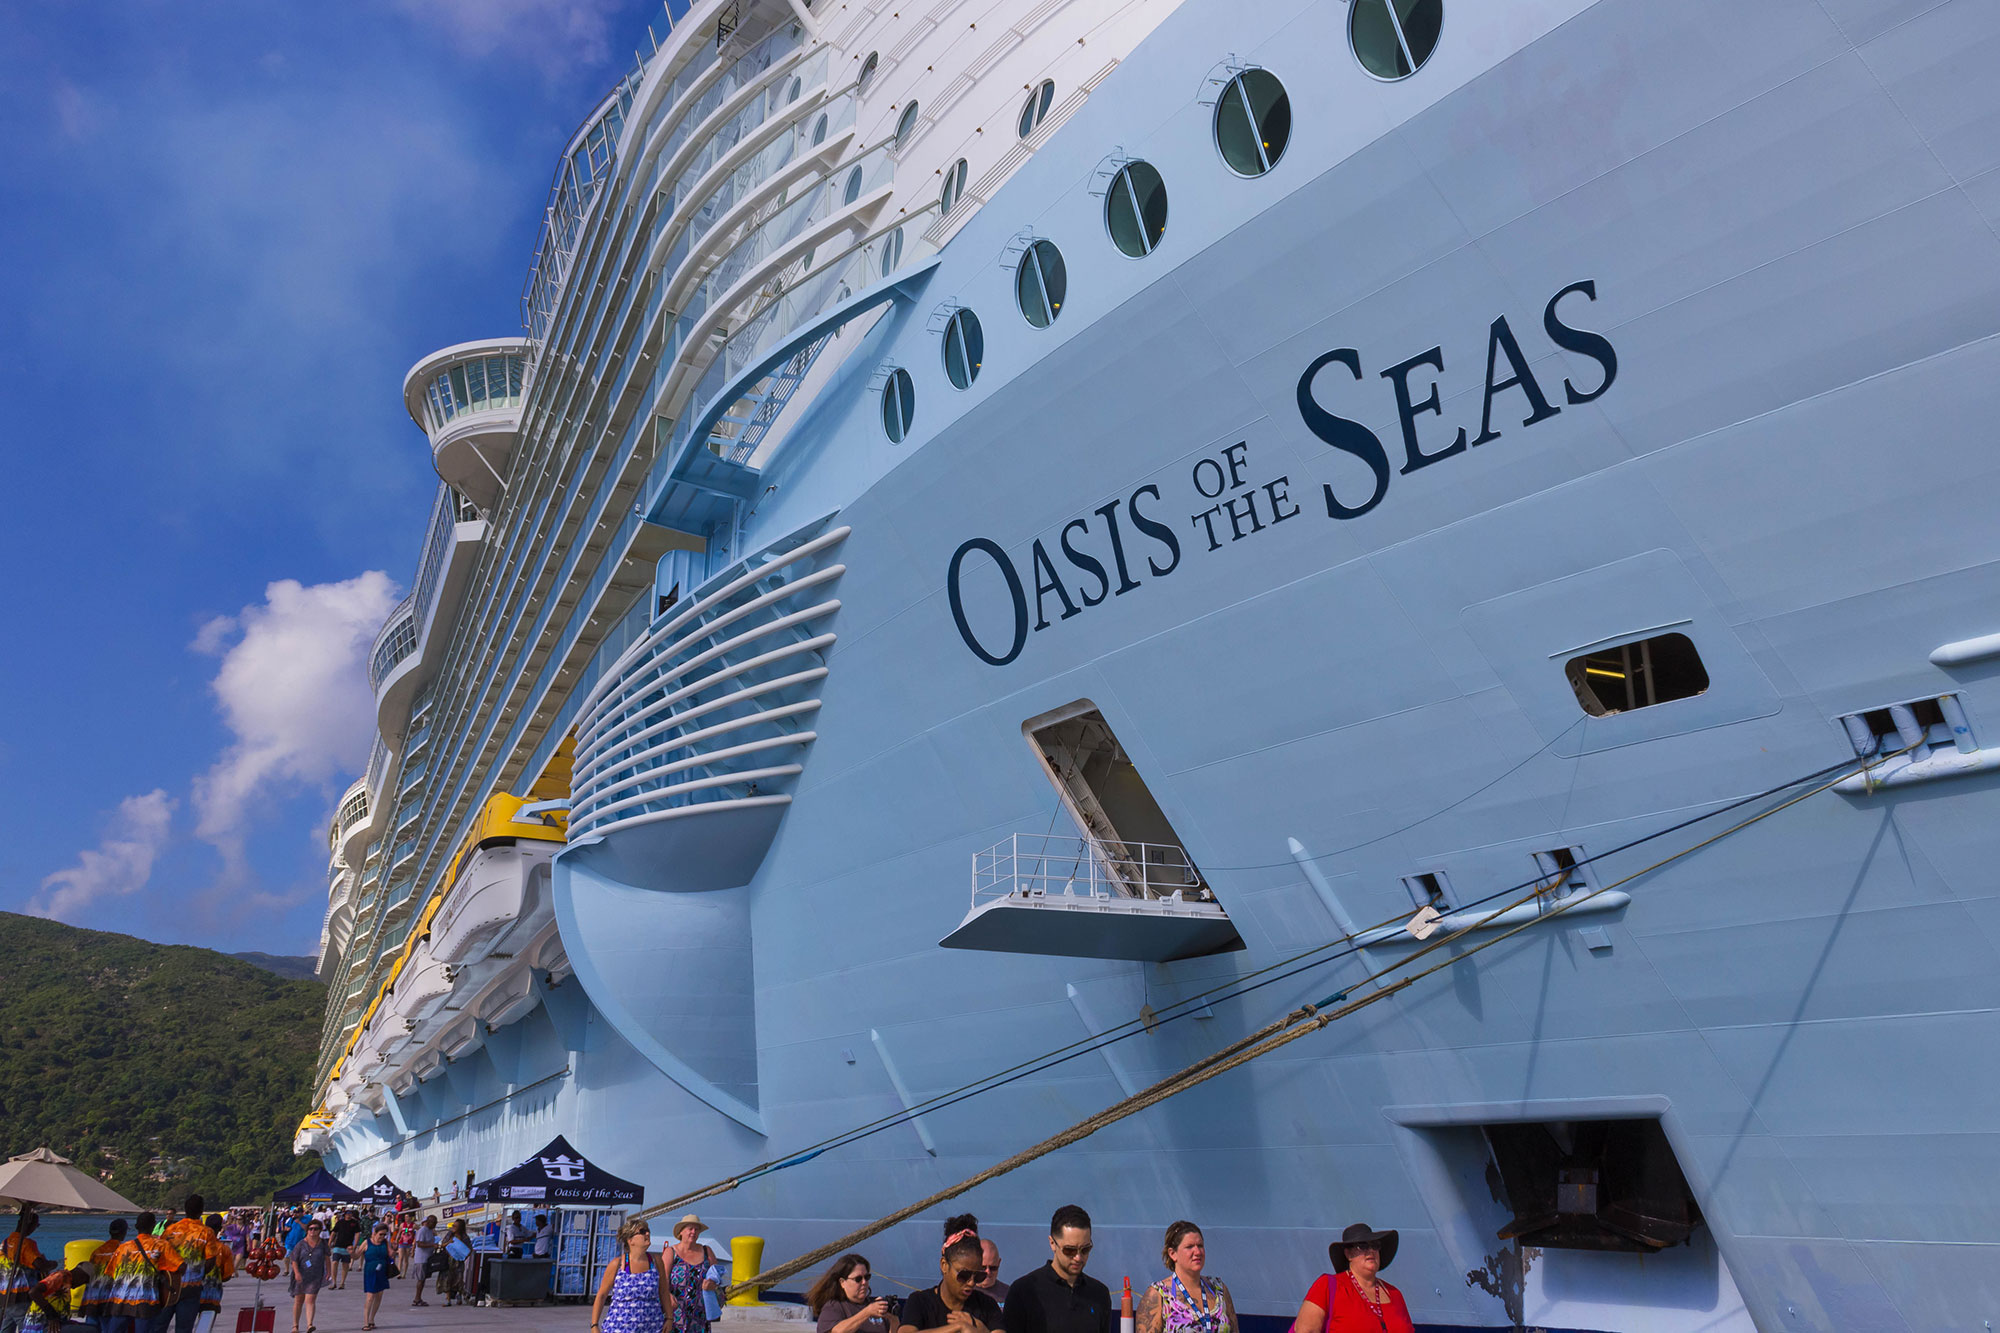 oasis-of-the-seas-carnival-cruise-ship-1